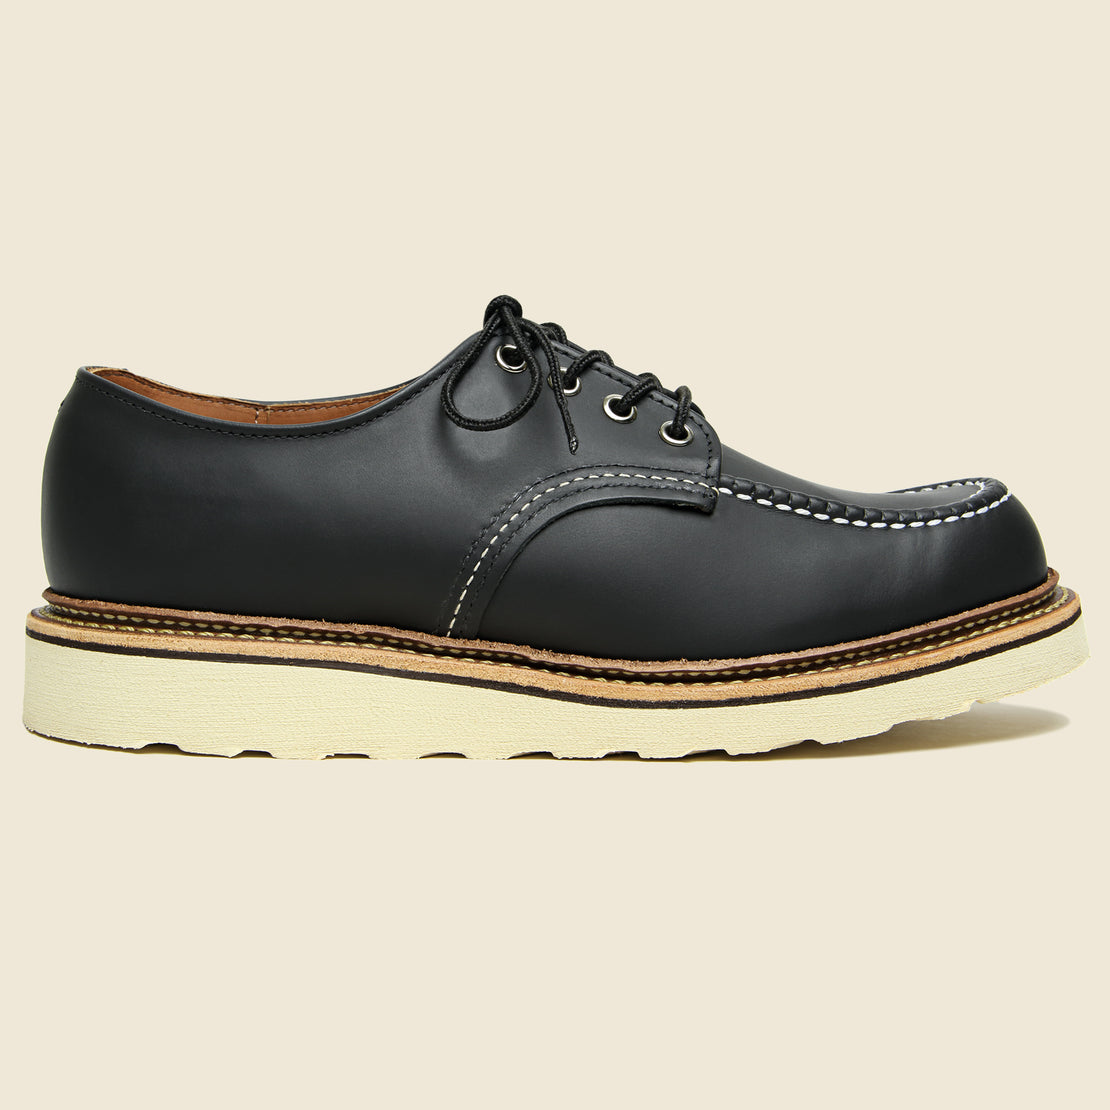 Red Wing Classic Oxford No. 8106 - Black Chrome